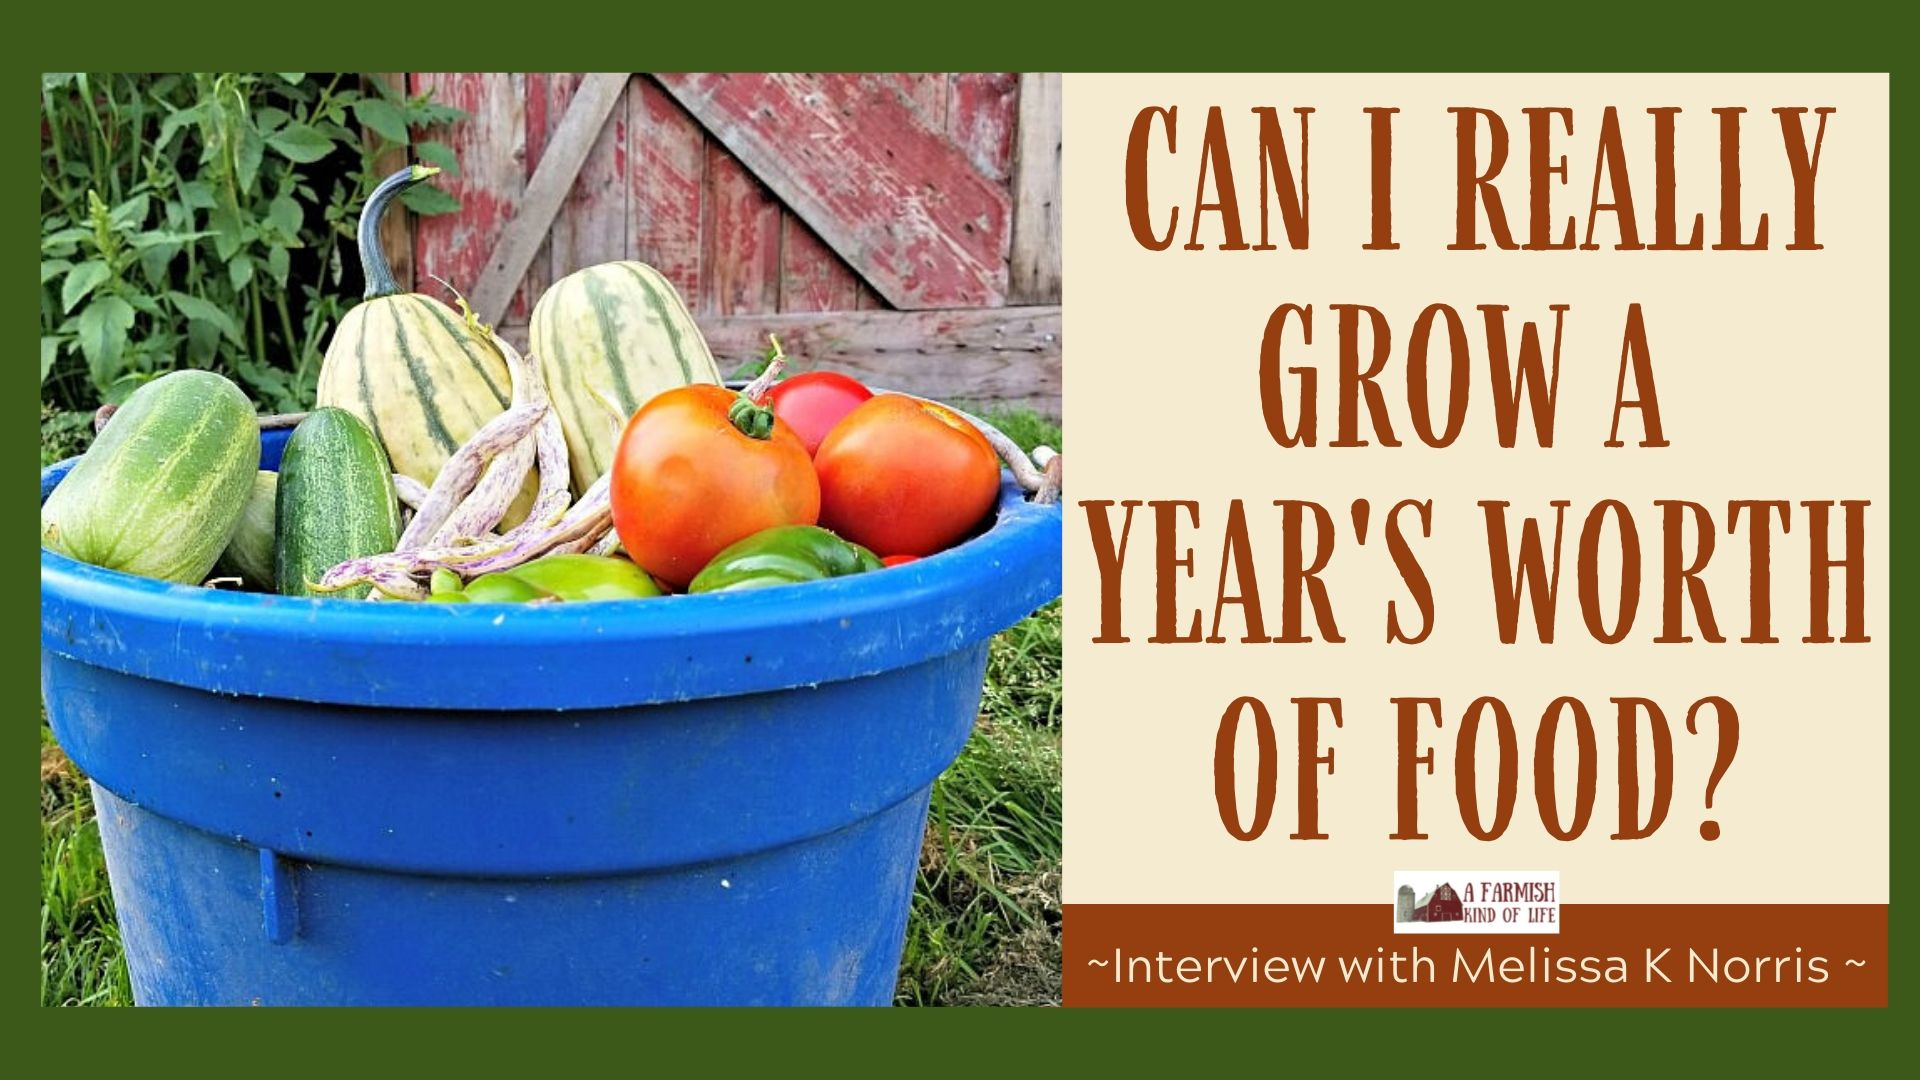 068: How to Grow a Year's Worth of Food (with Melissa K Norris)